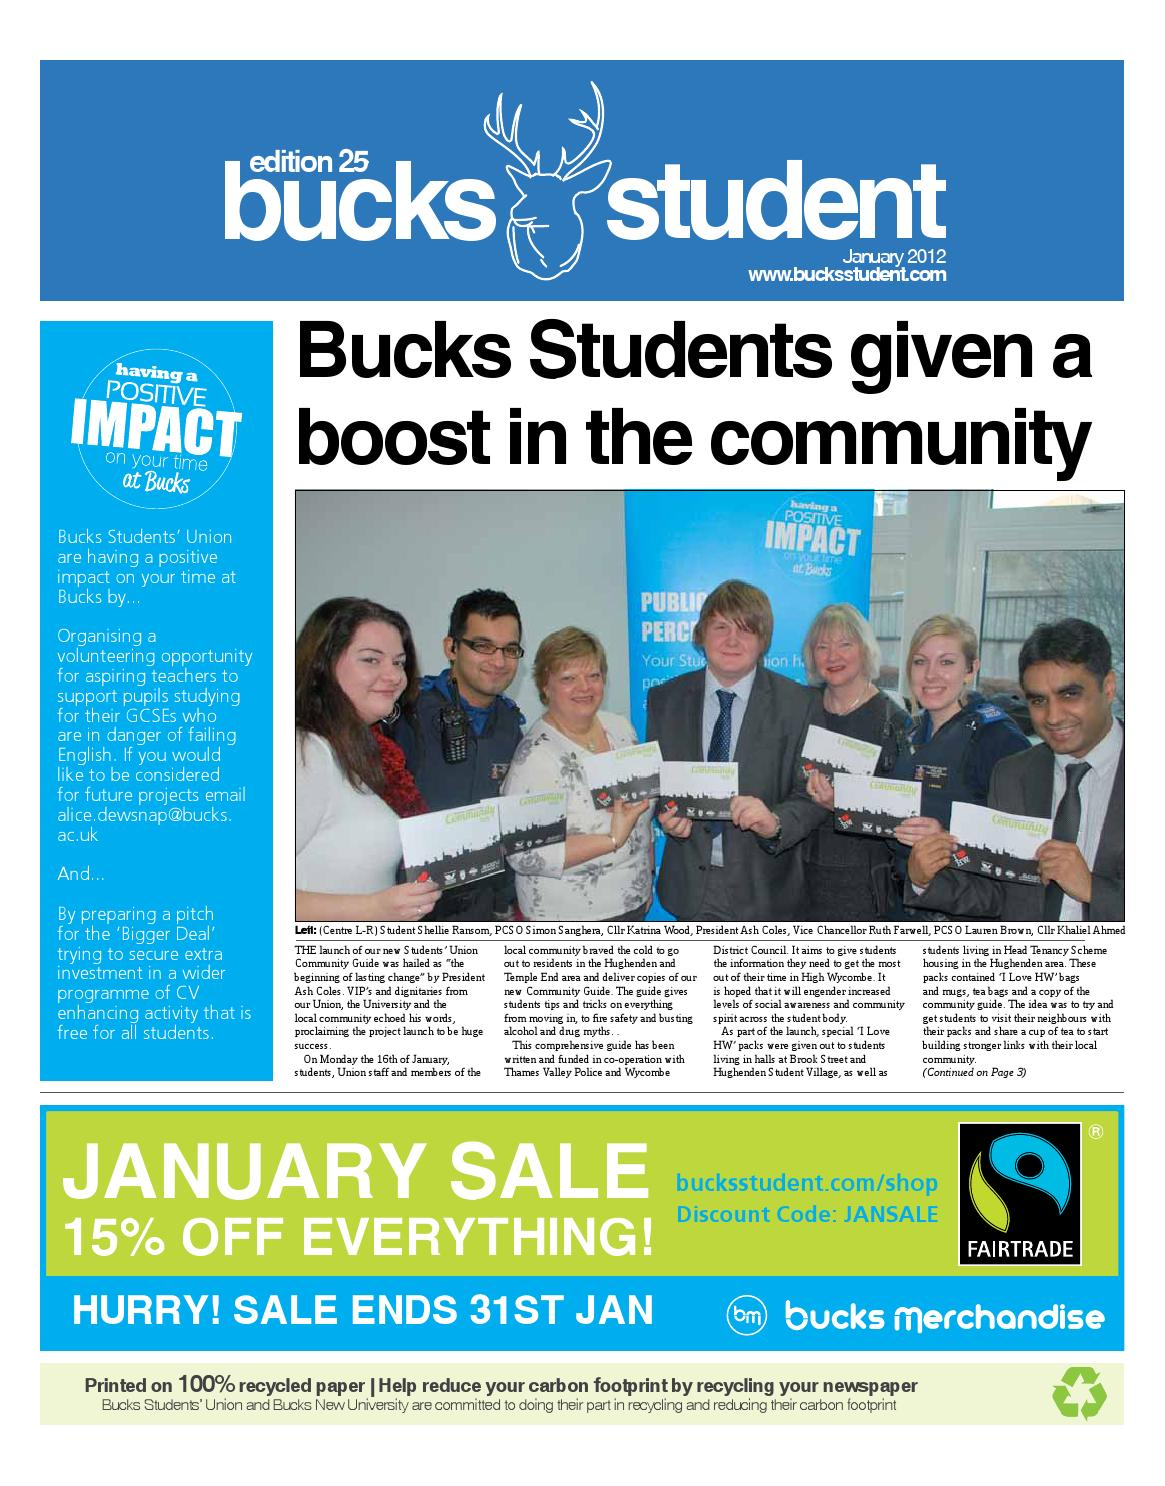 The bucks student edition 25 by the bucks student issuu fandeluxe Choice Image